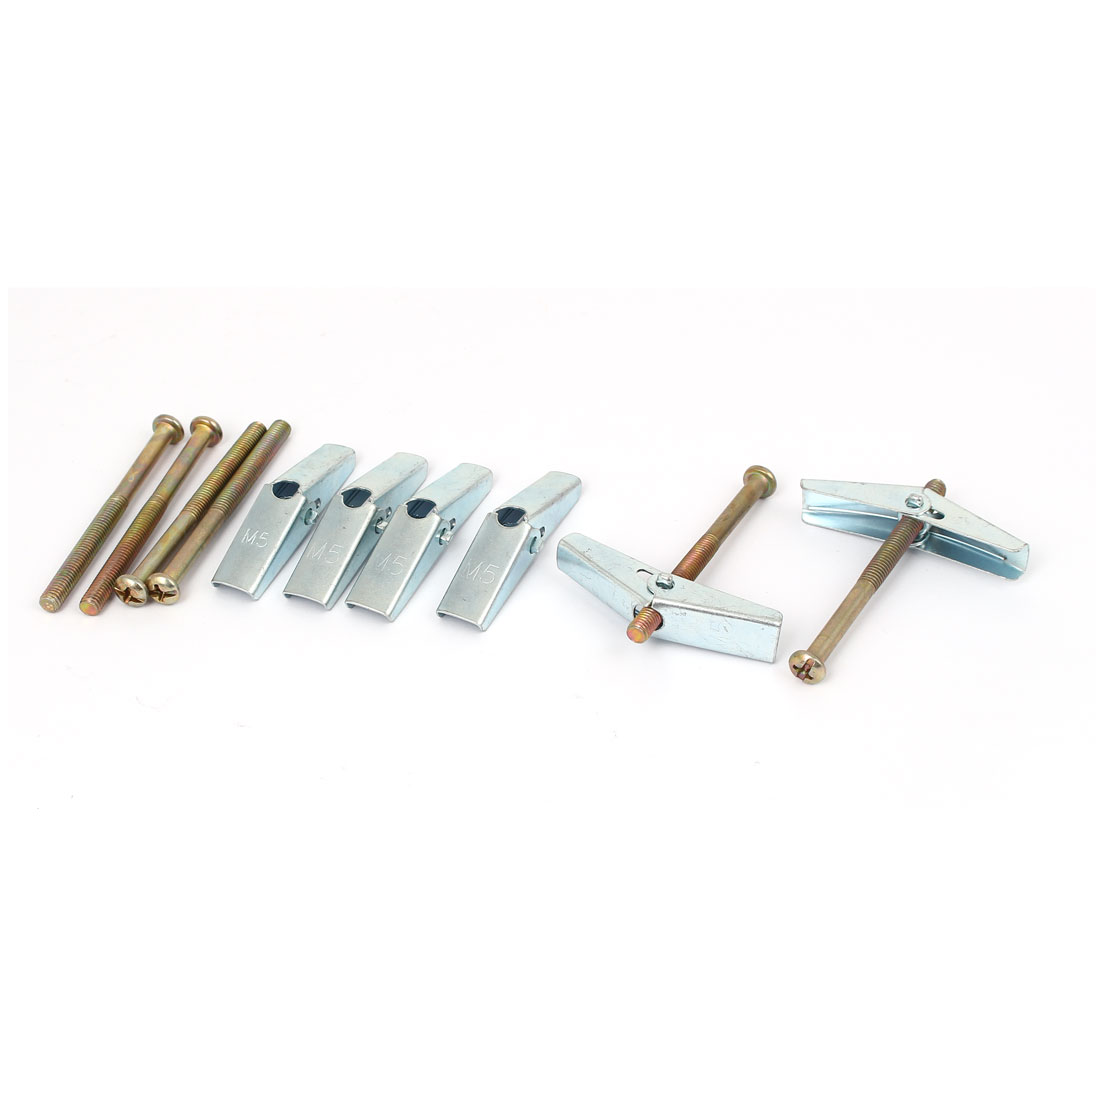 5mm x 60mm Thread Spring Toggle Hollow Plasterboard Cavity Wall Anchor Bolt 6pcs